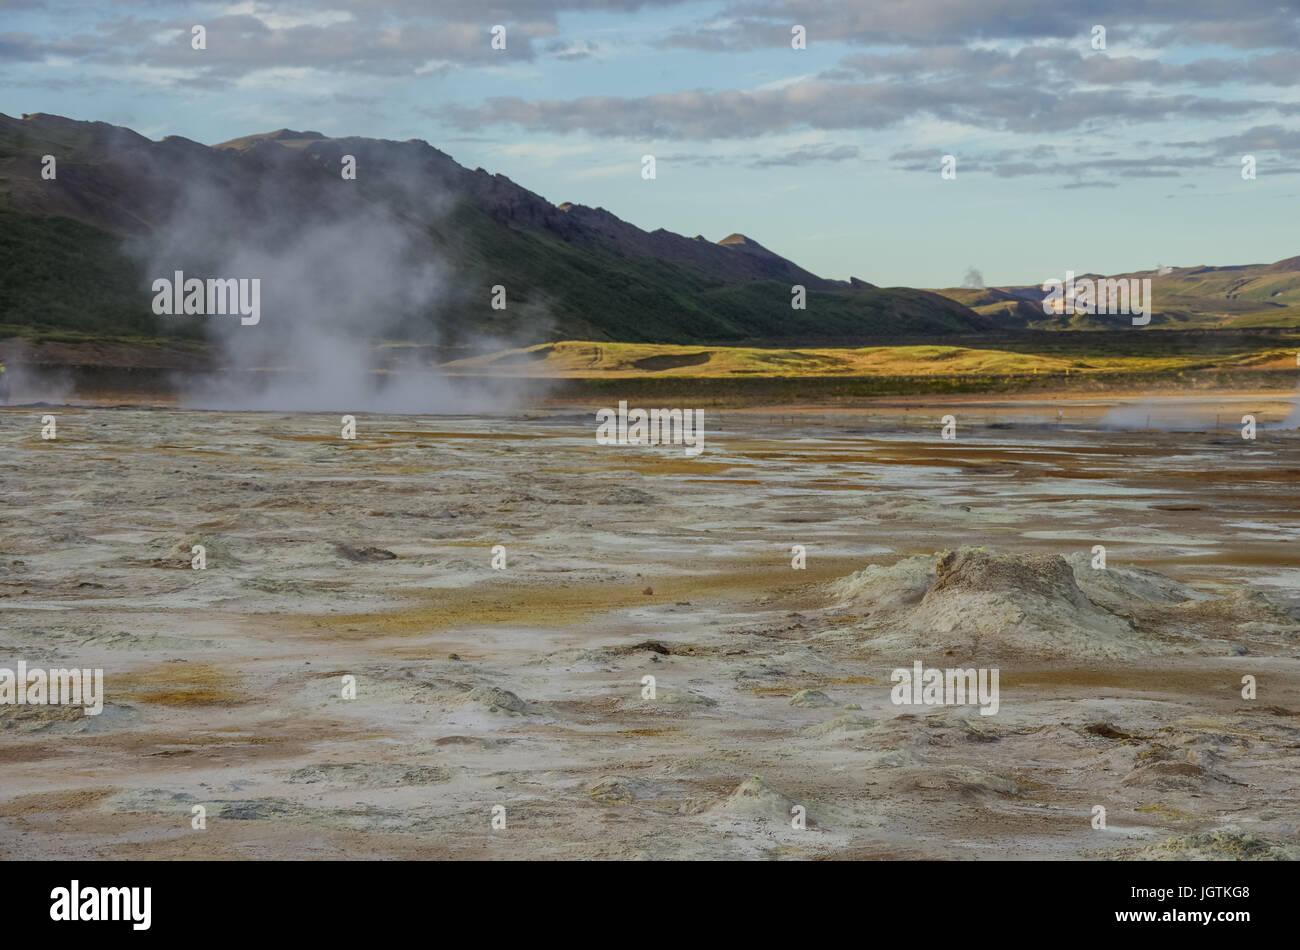 Hverarond geothermal field in Iceland. This is a field in Krafla caldera area near Mvatmn Lake which is full of - Stock Image